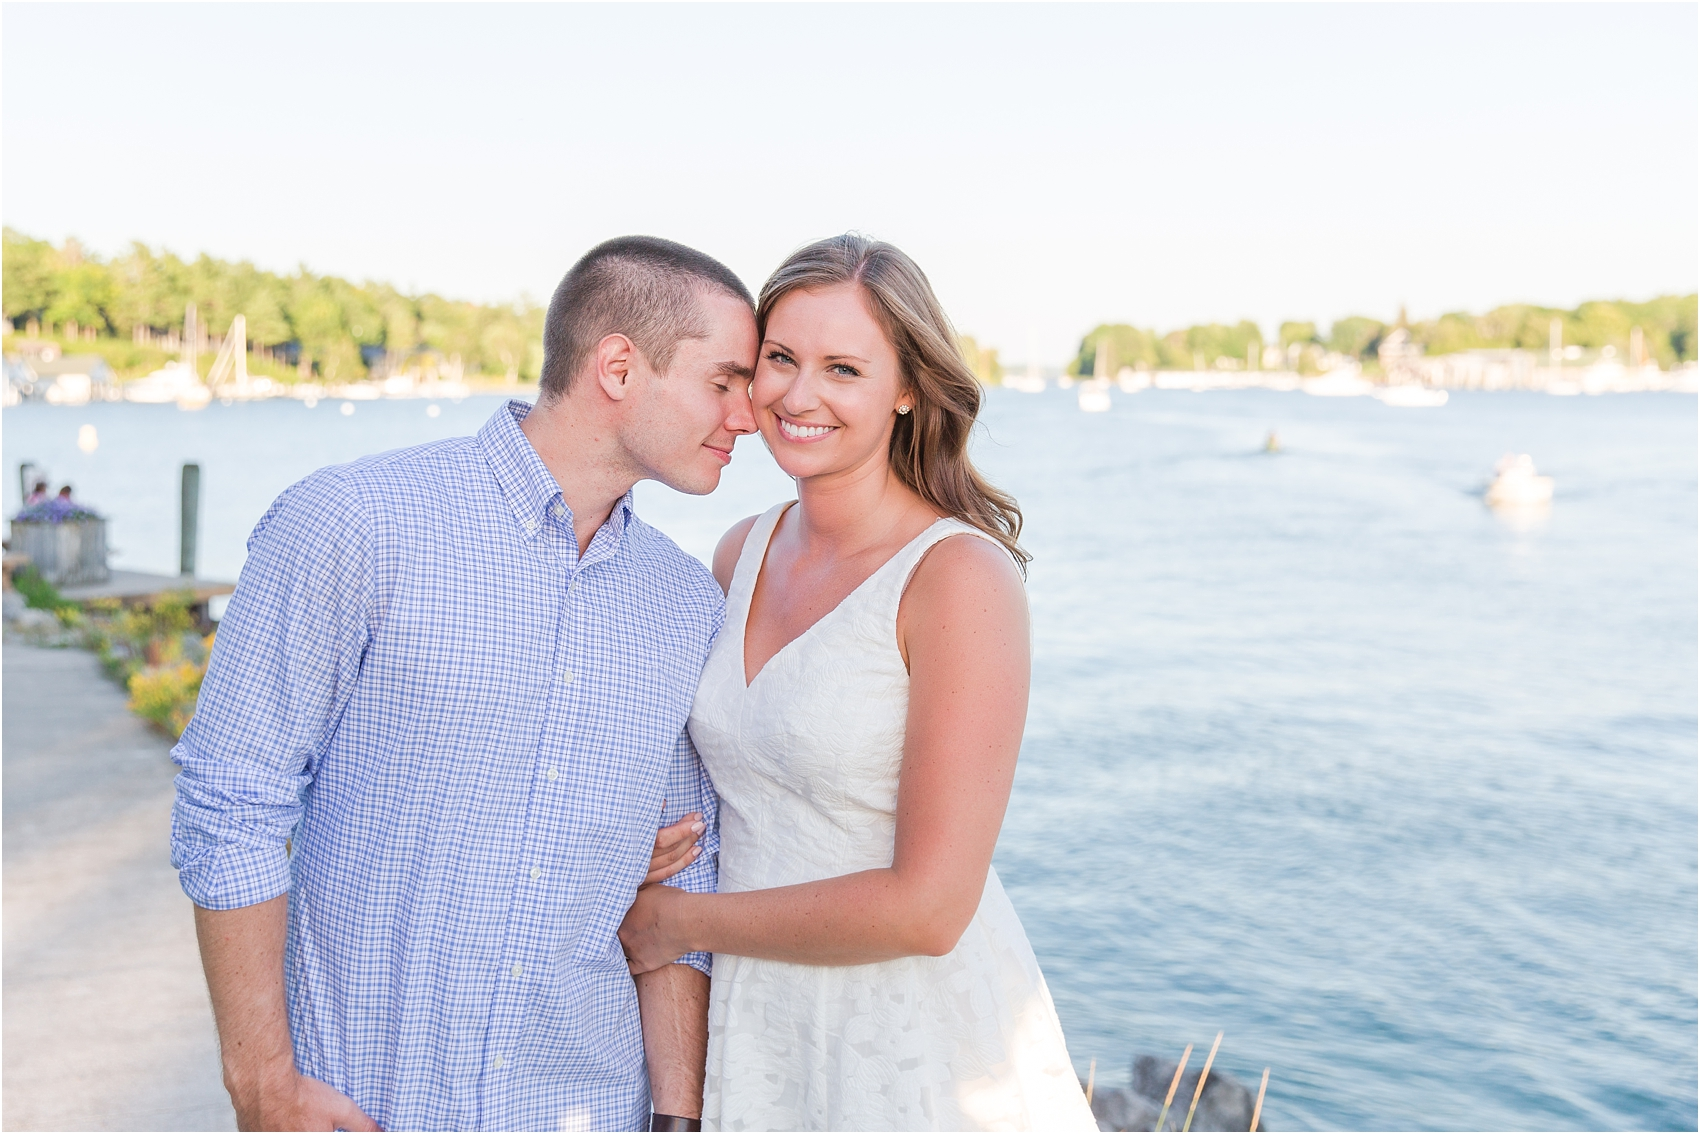 romantic-sunset-engagement-photos-in-downtown-charlevoix-mi-by-courtney-carolyn-photography_0007.jpg